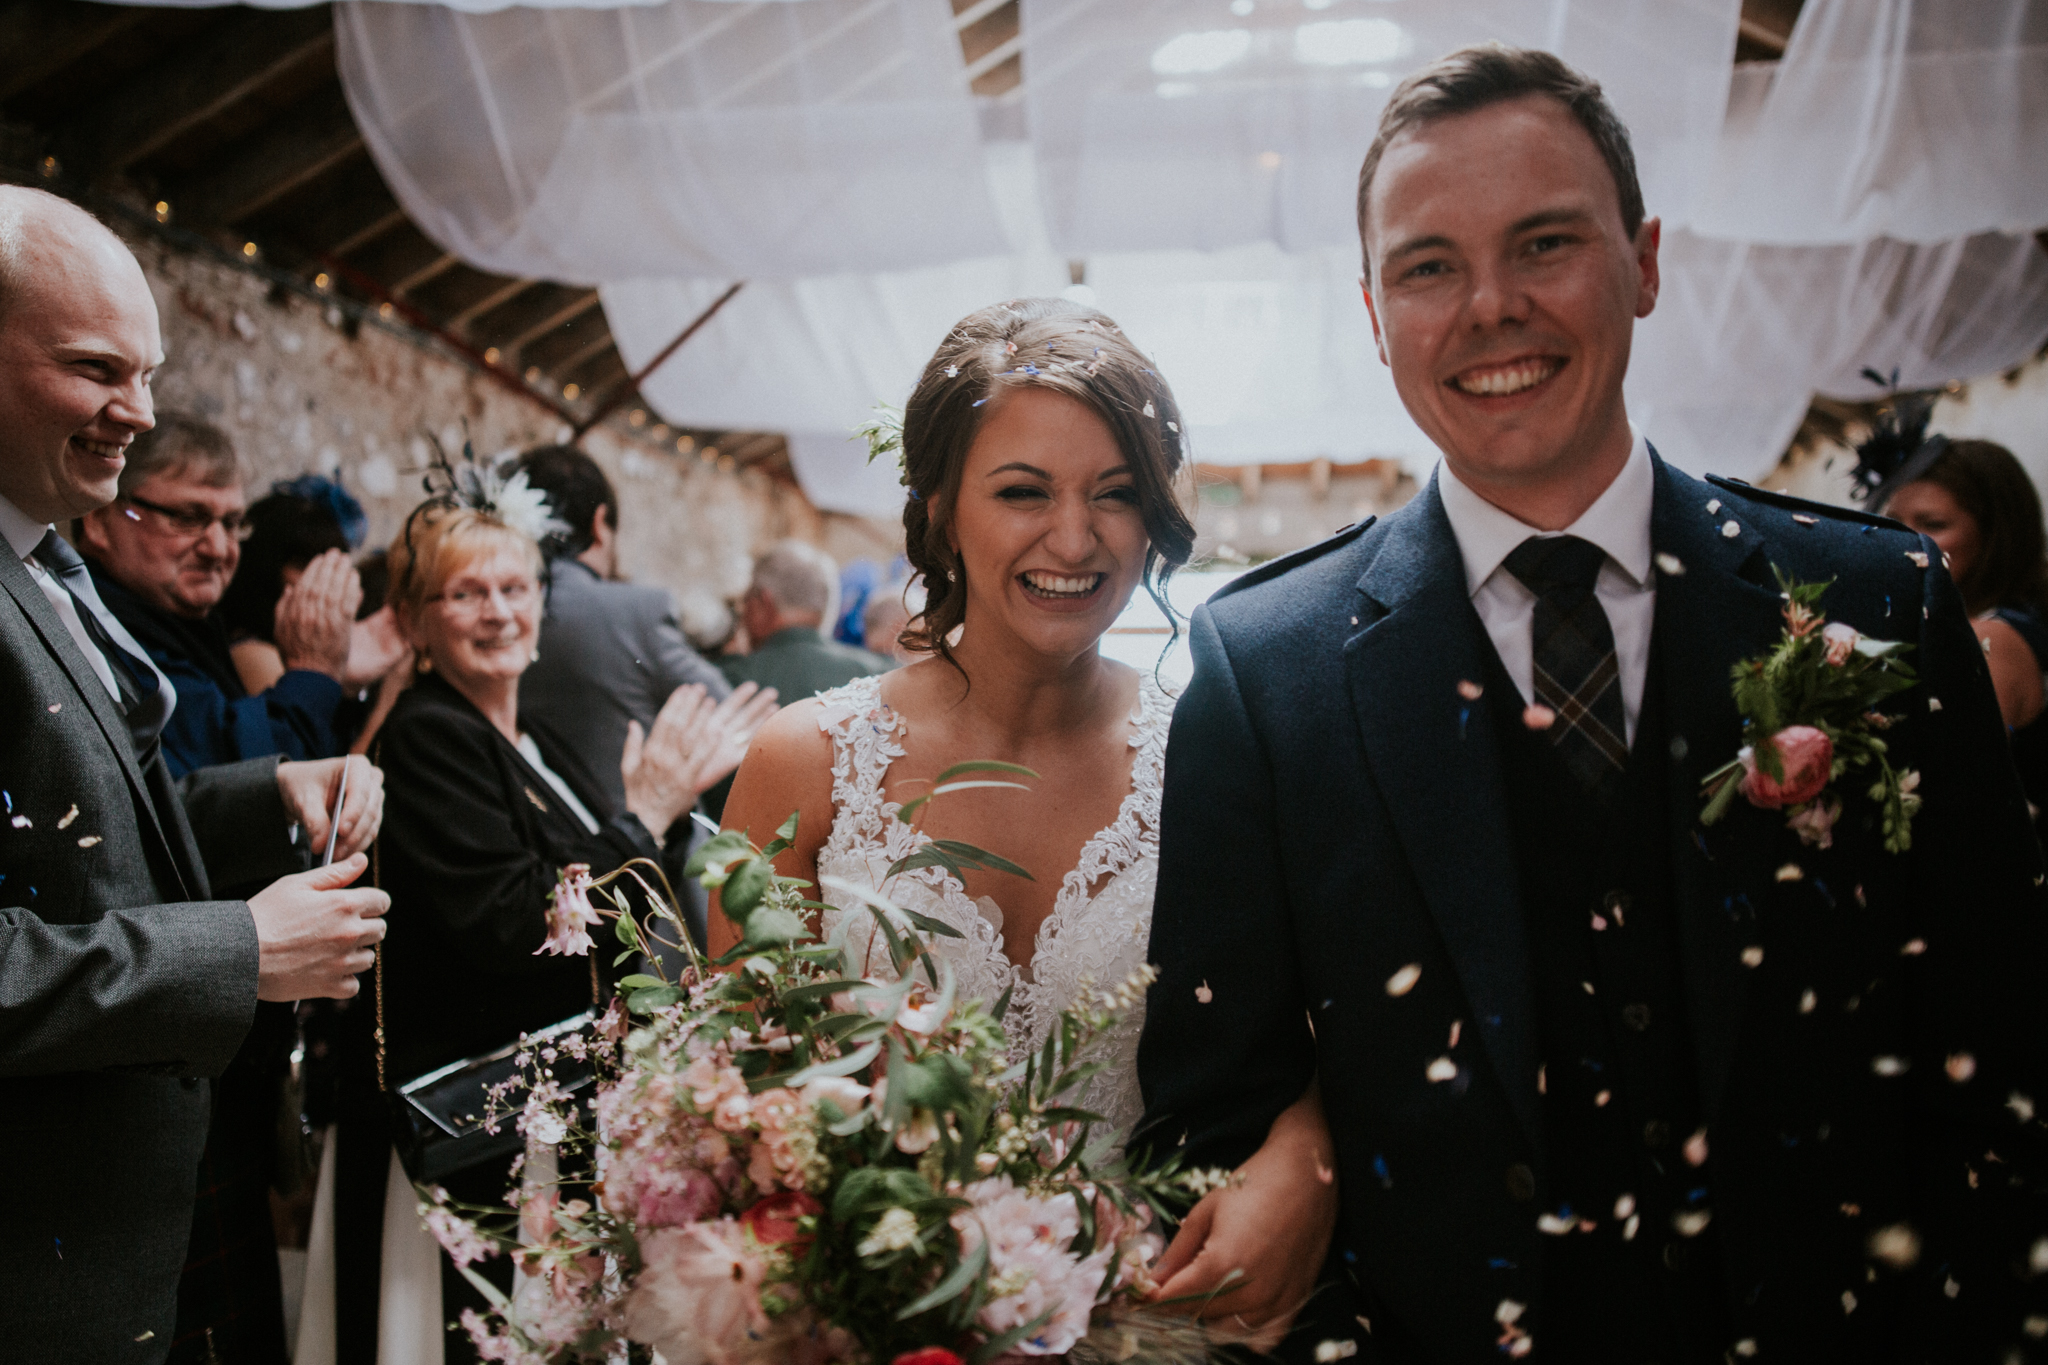 The bride and groom are walking back as a husband and wife during the stunning confetti shoot